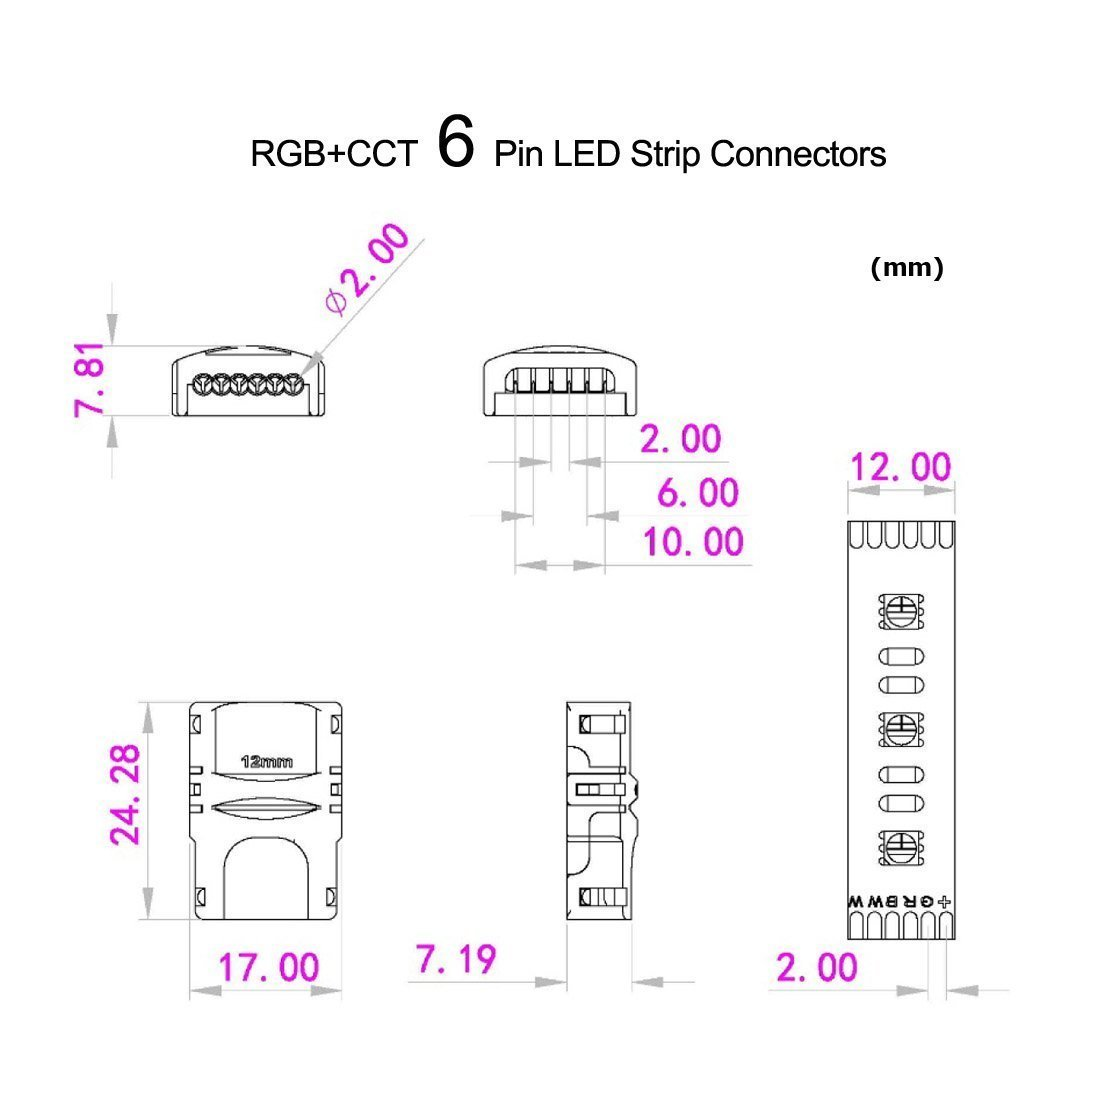 RGBWW 6 Pin LED Strip Connectors 12mm RGB+CCT Connector - DIY Strip to Wire Solderless Quick Connection for 12v 24v Non-Waterproof IP20 RGBCCT Led Tape Lights